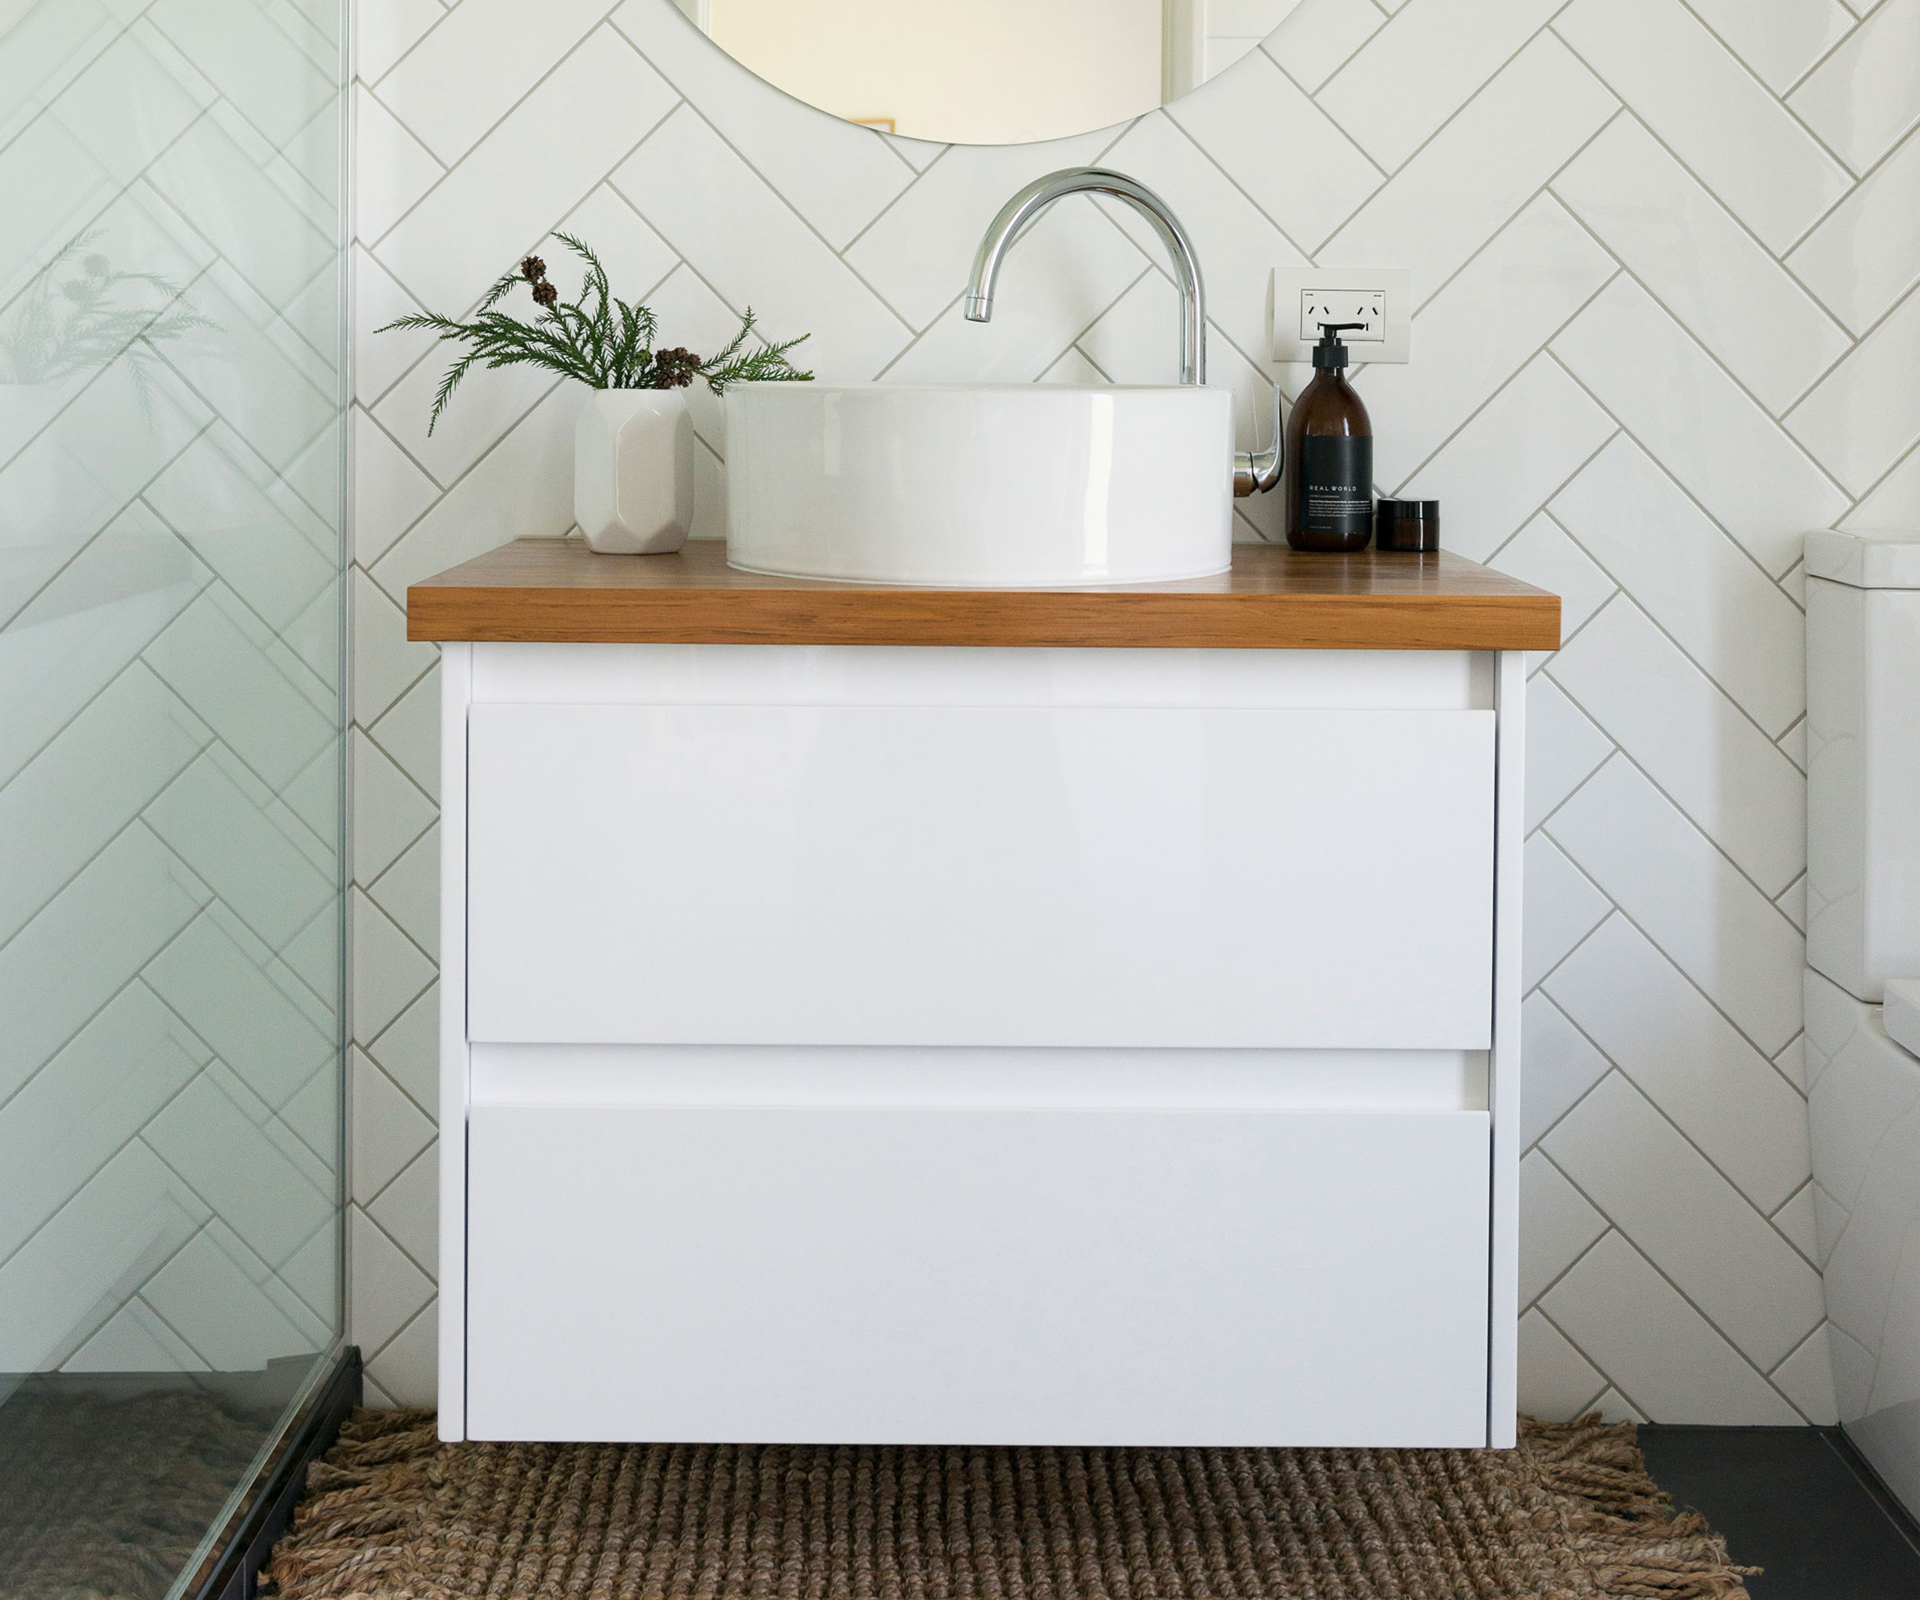 Ferguson Bathroom Vanities 5 Best Bathroom Vanity Designs To Match Your Style